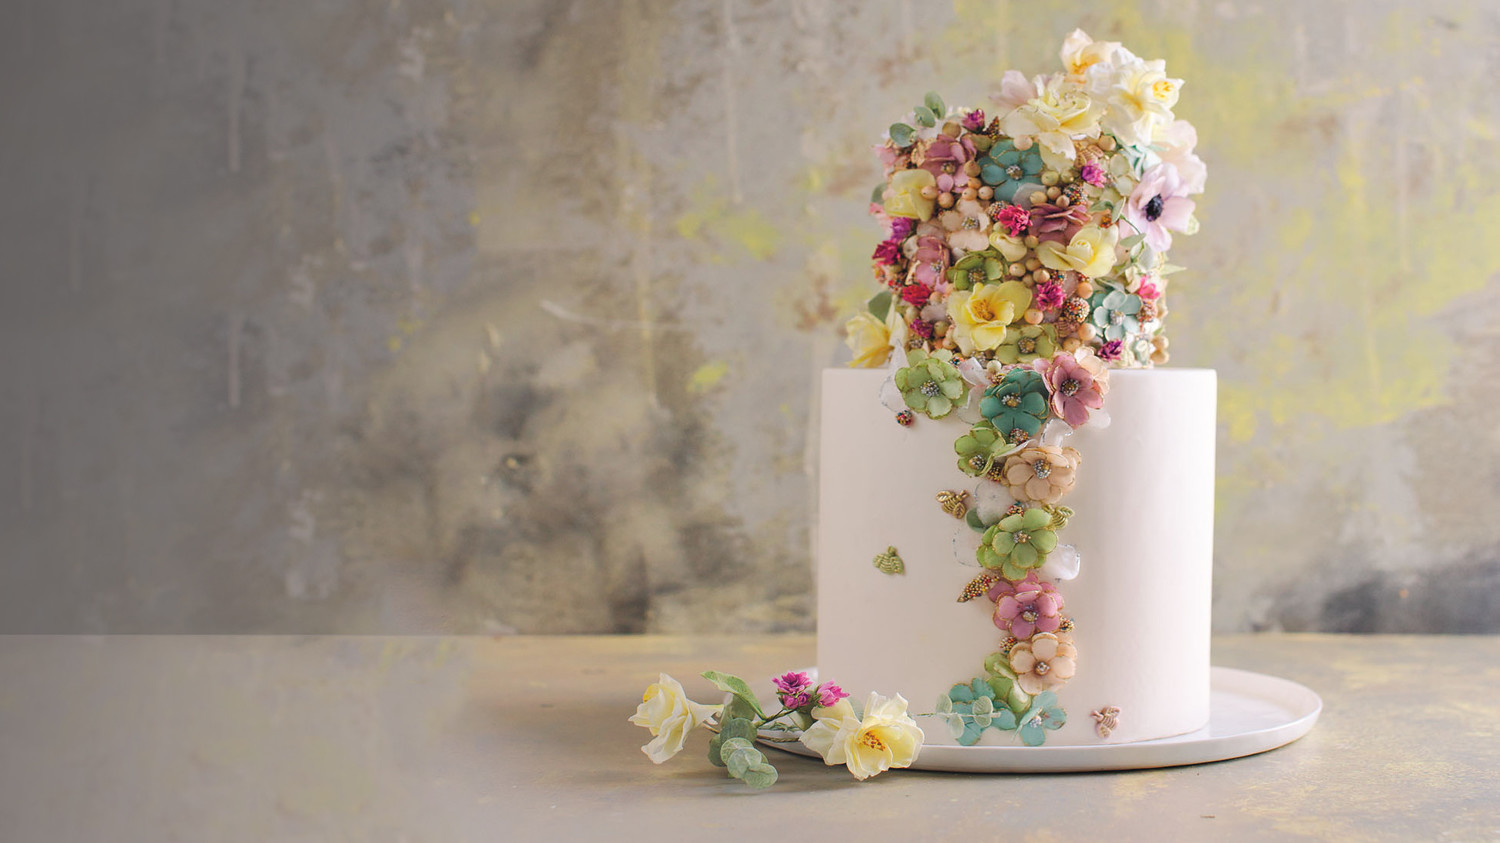 Martha Stewart Wedding Gift Ideas: Gorgeous Floral Wedding Cakes By Maggie Austin